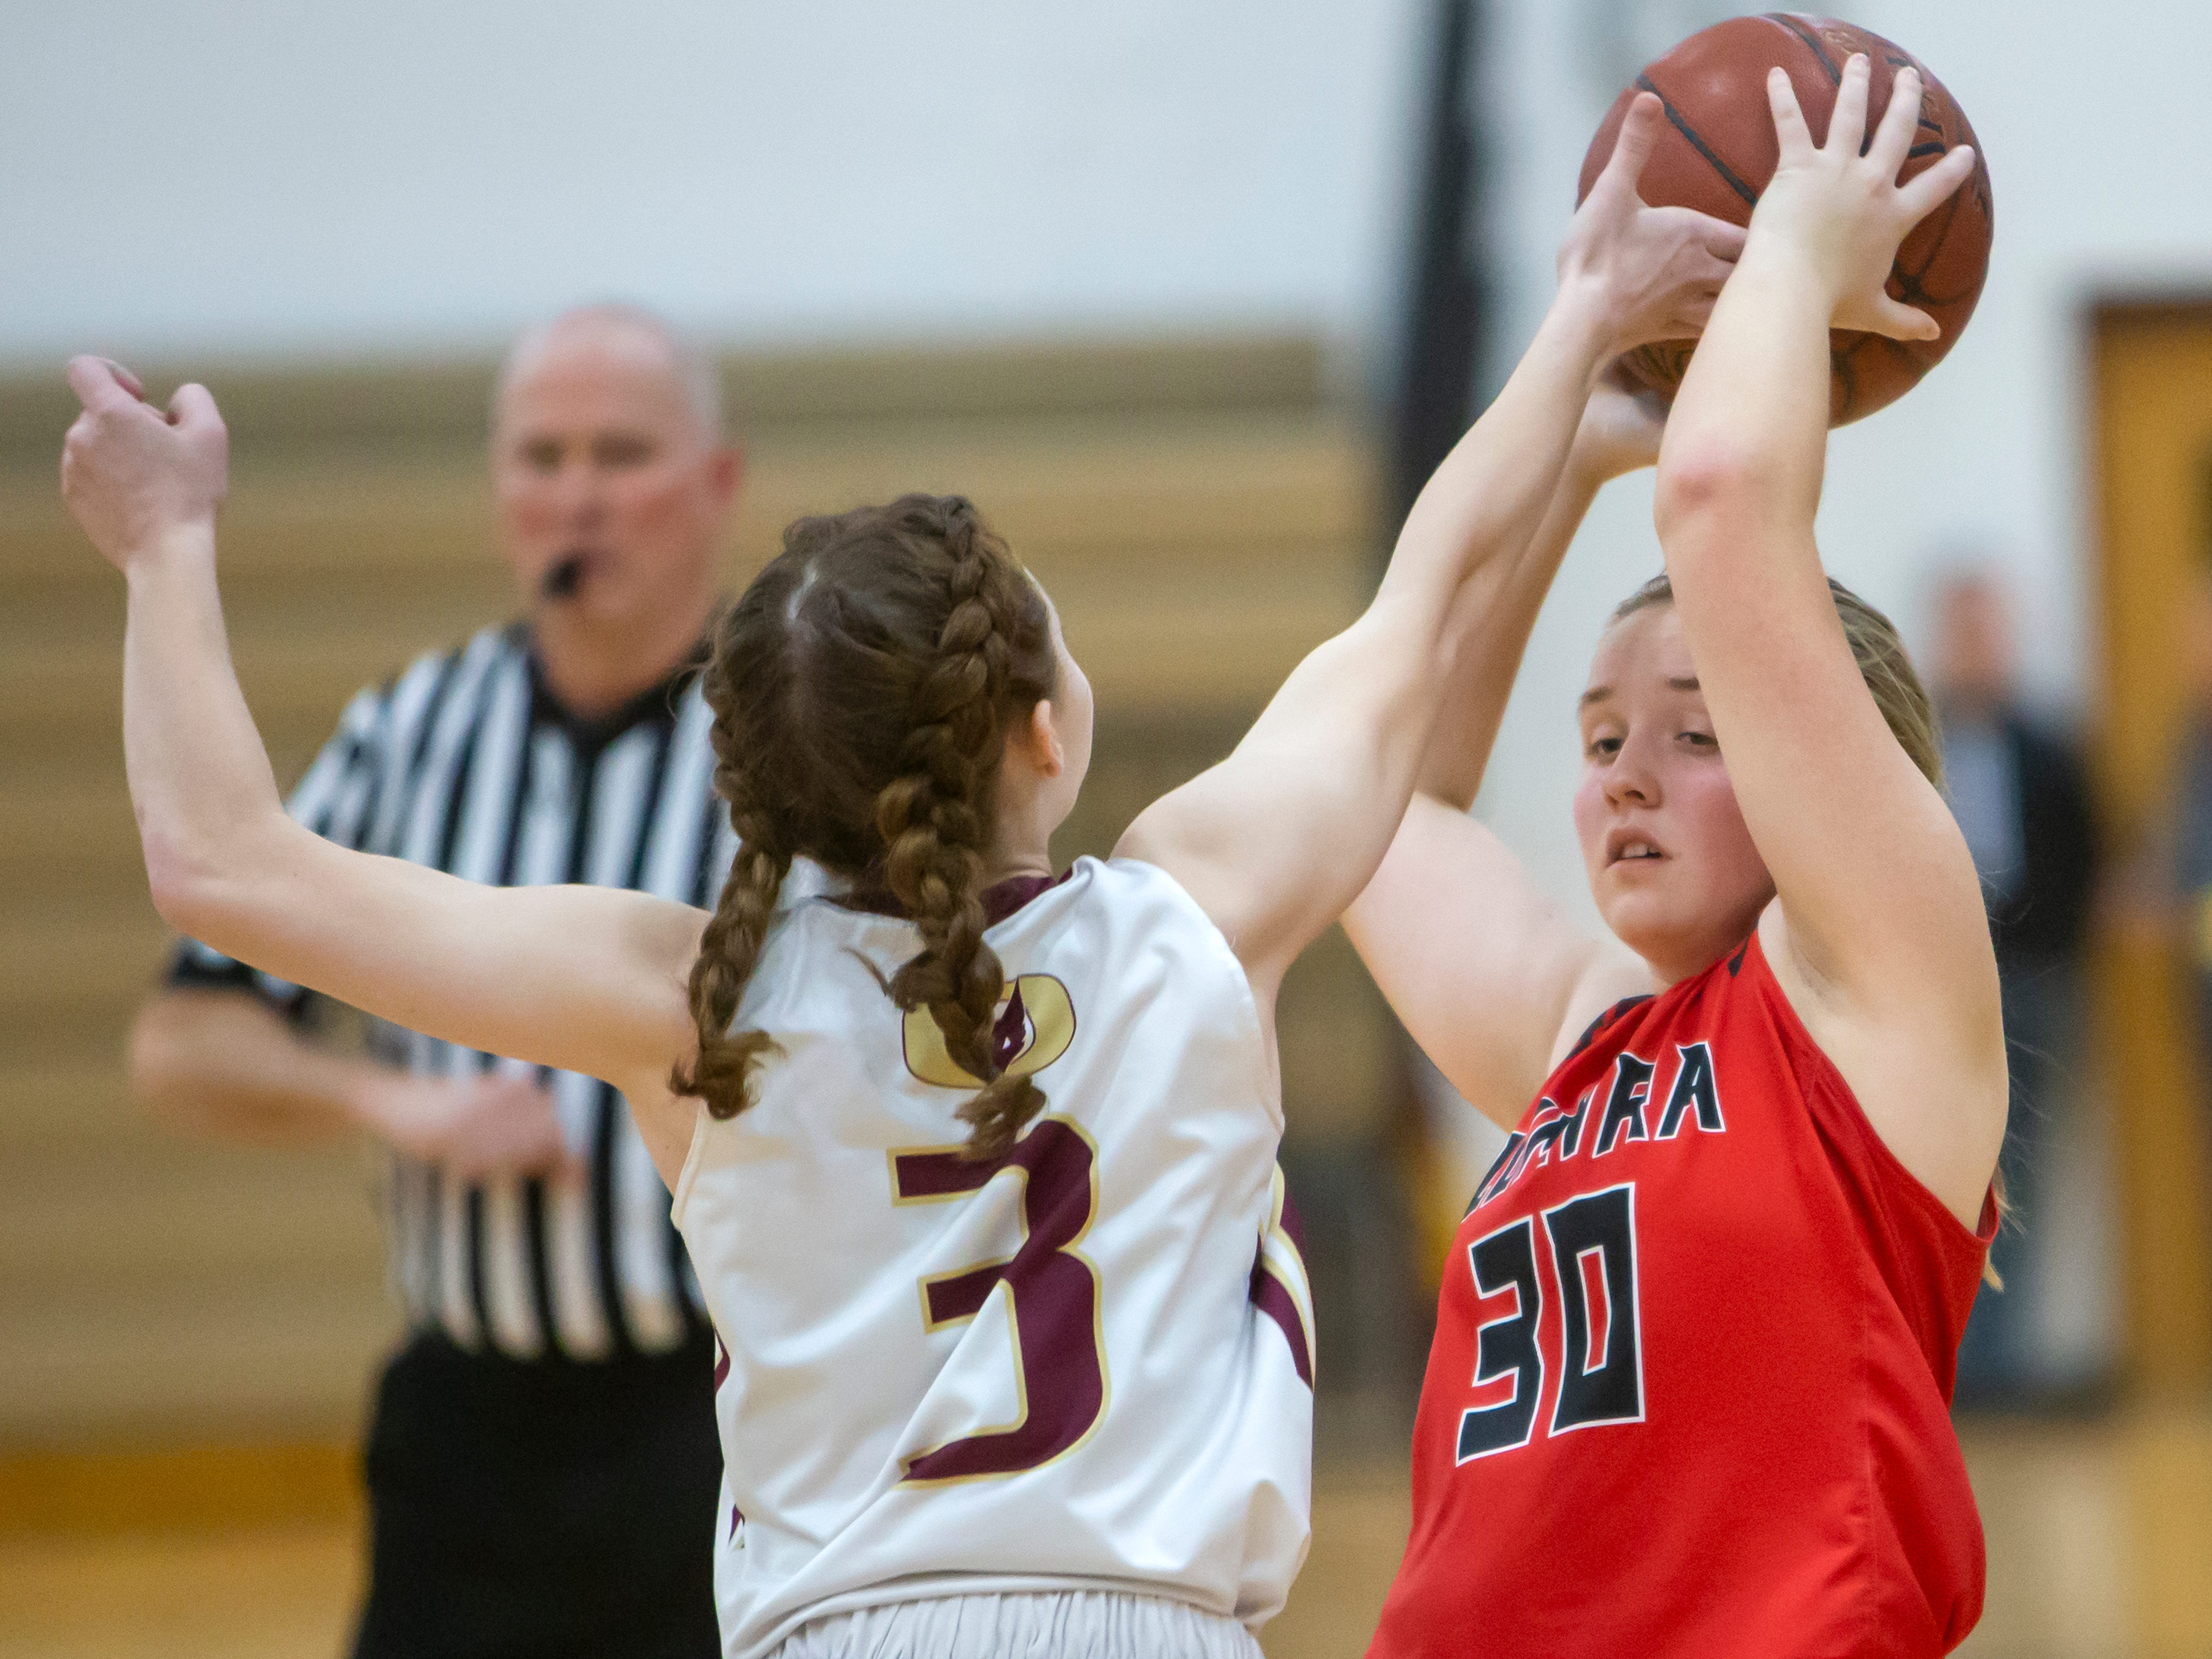 Omro's Brooke Beriau attempts to break the ball away from Lomira's Erin Ries at Omro High School on Friday, December 14, 2018.